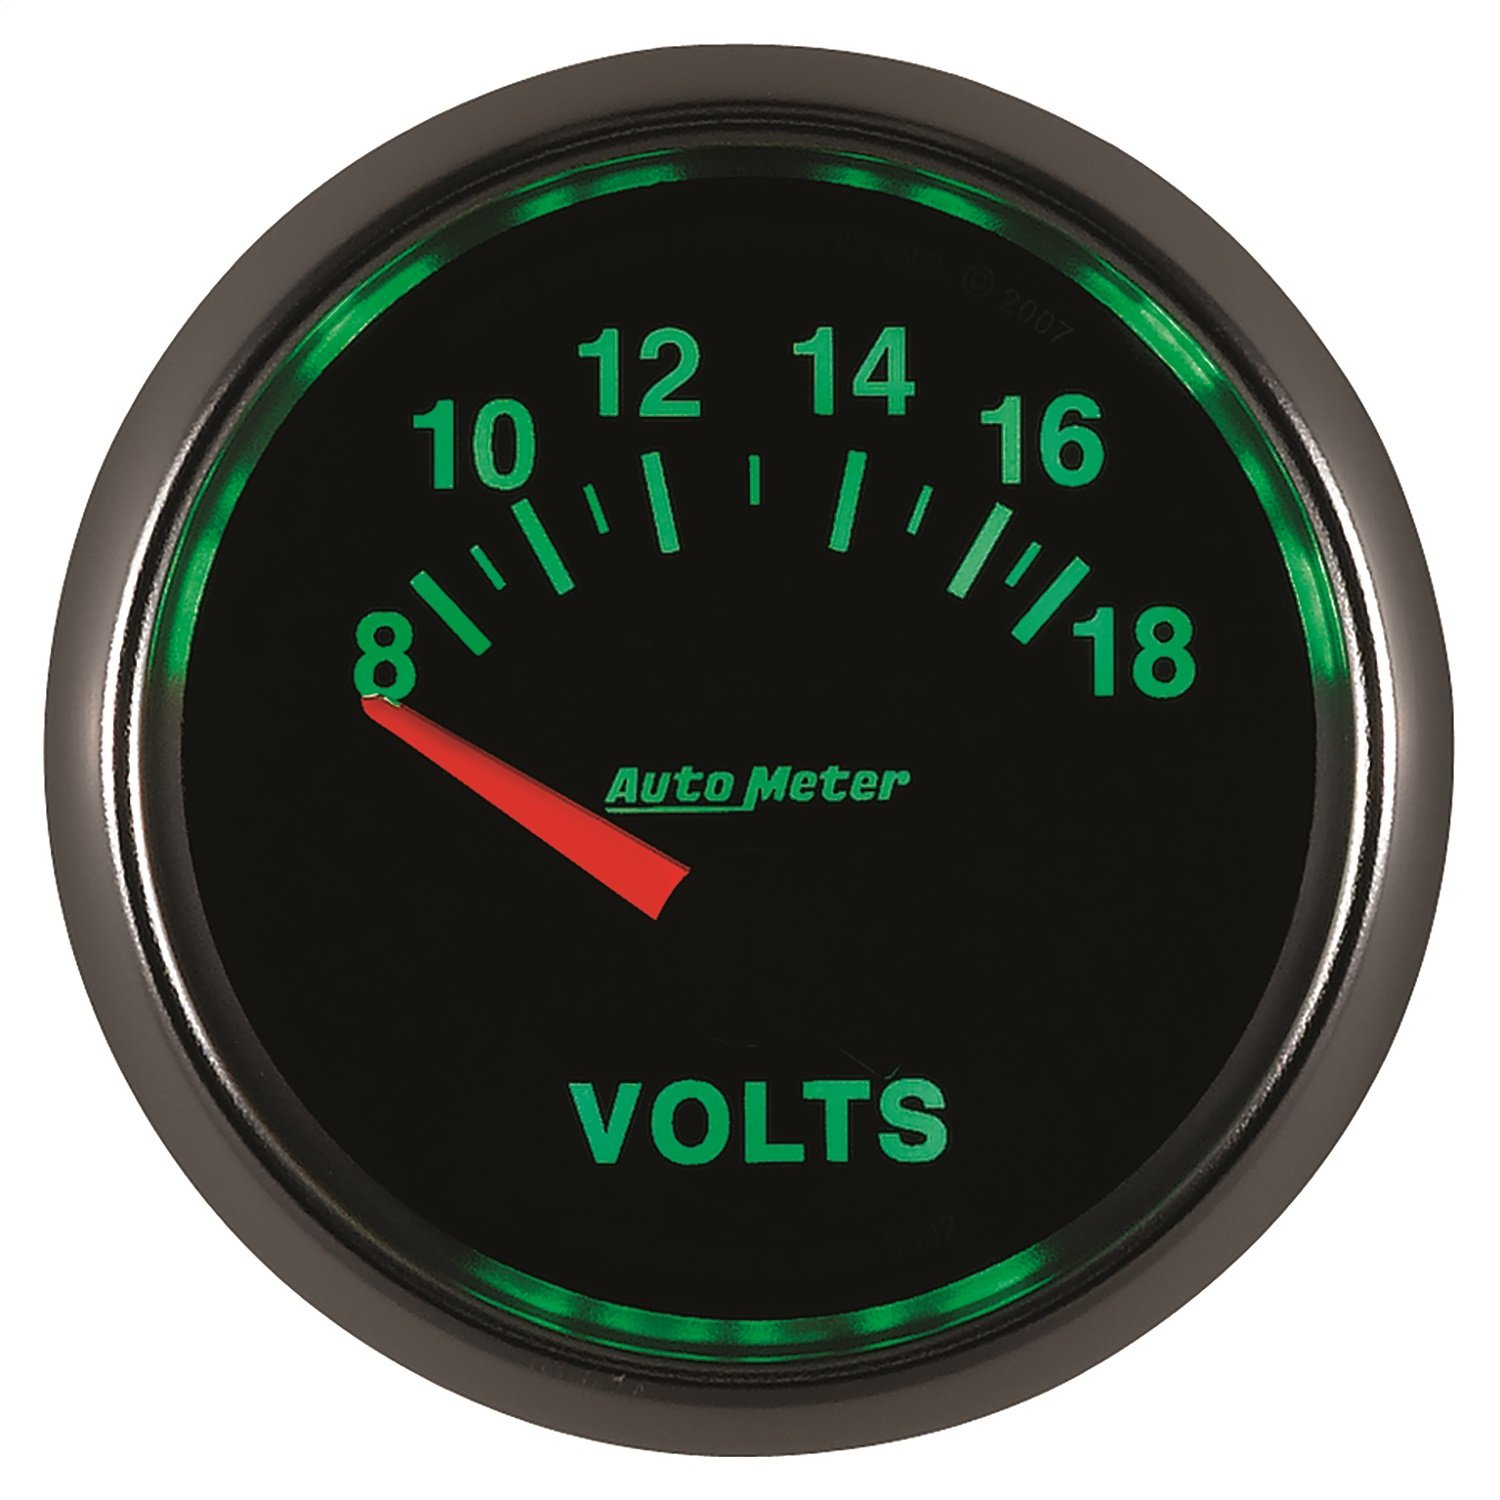 Auto Meter 3892 GS 2-1/16'' 8-18V Short Sweep Electric Voltmeter by AUTO METER